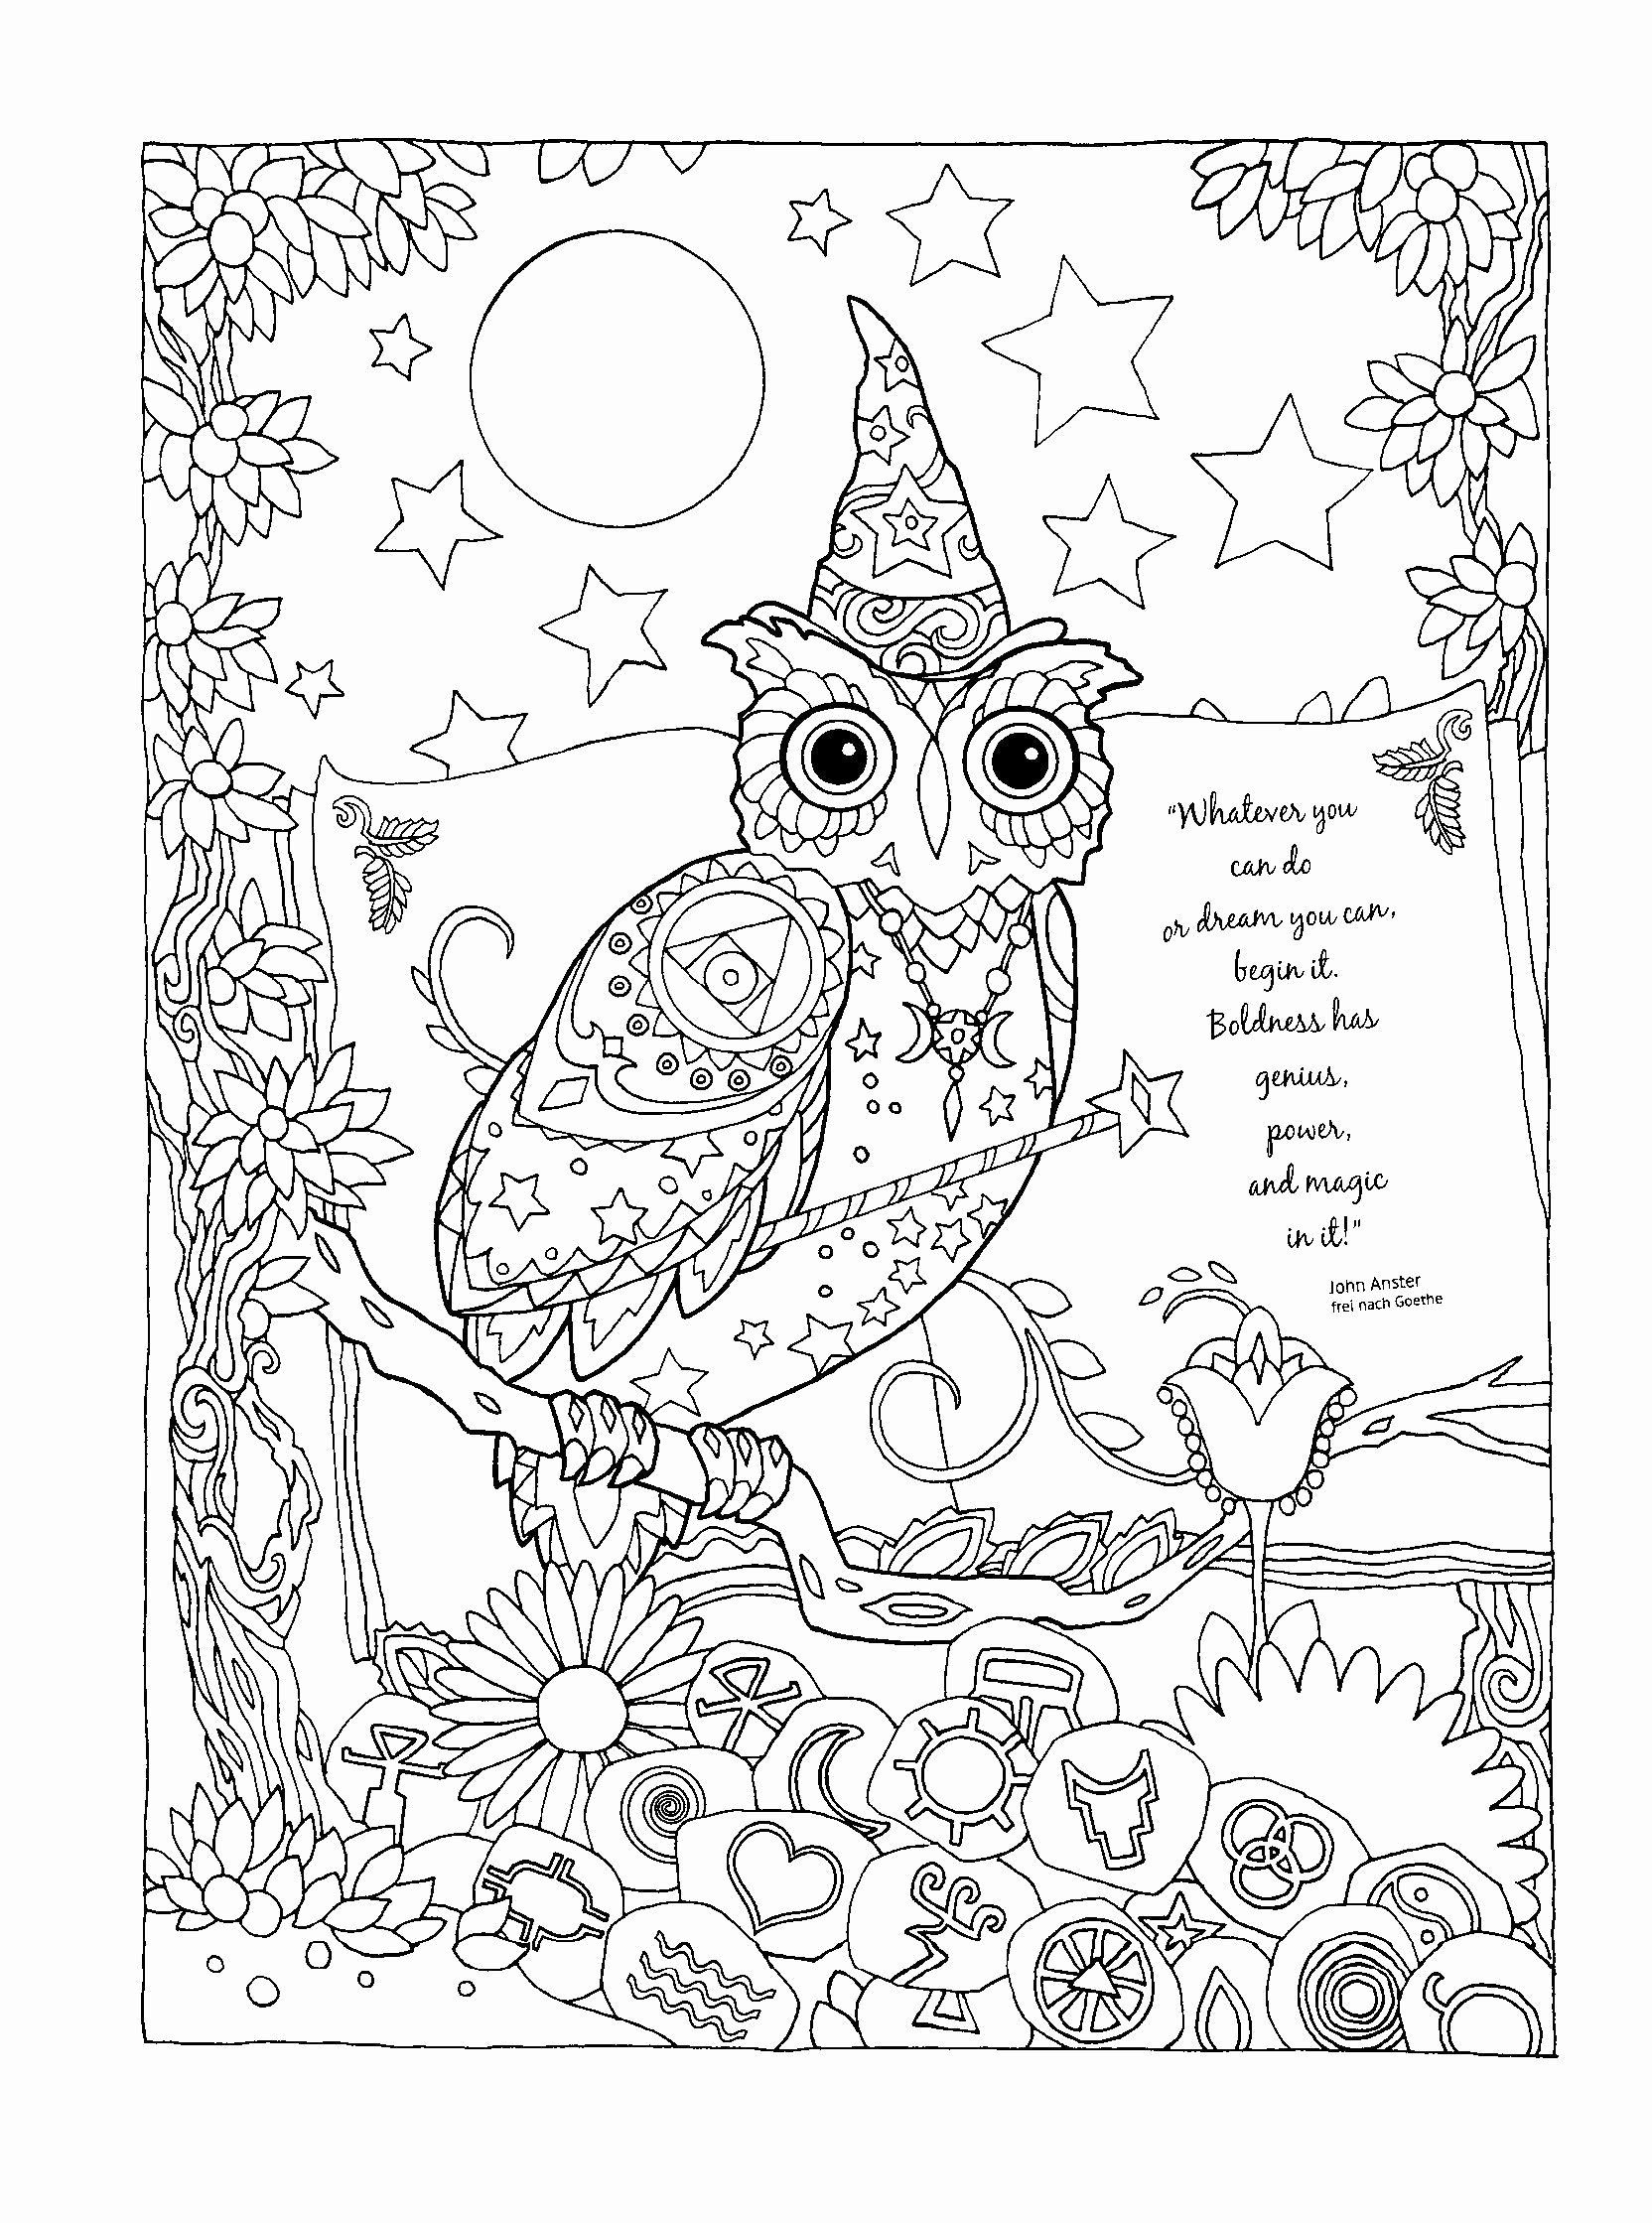 Printable Abc Coloring Pages Beautiful Stupendous Coloring